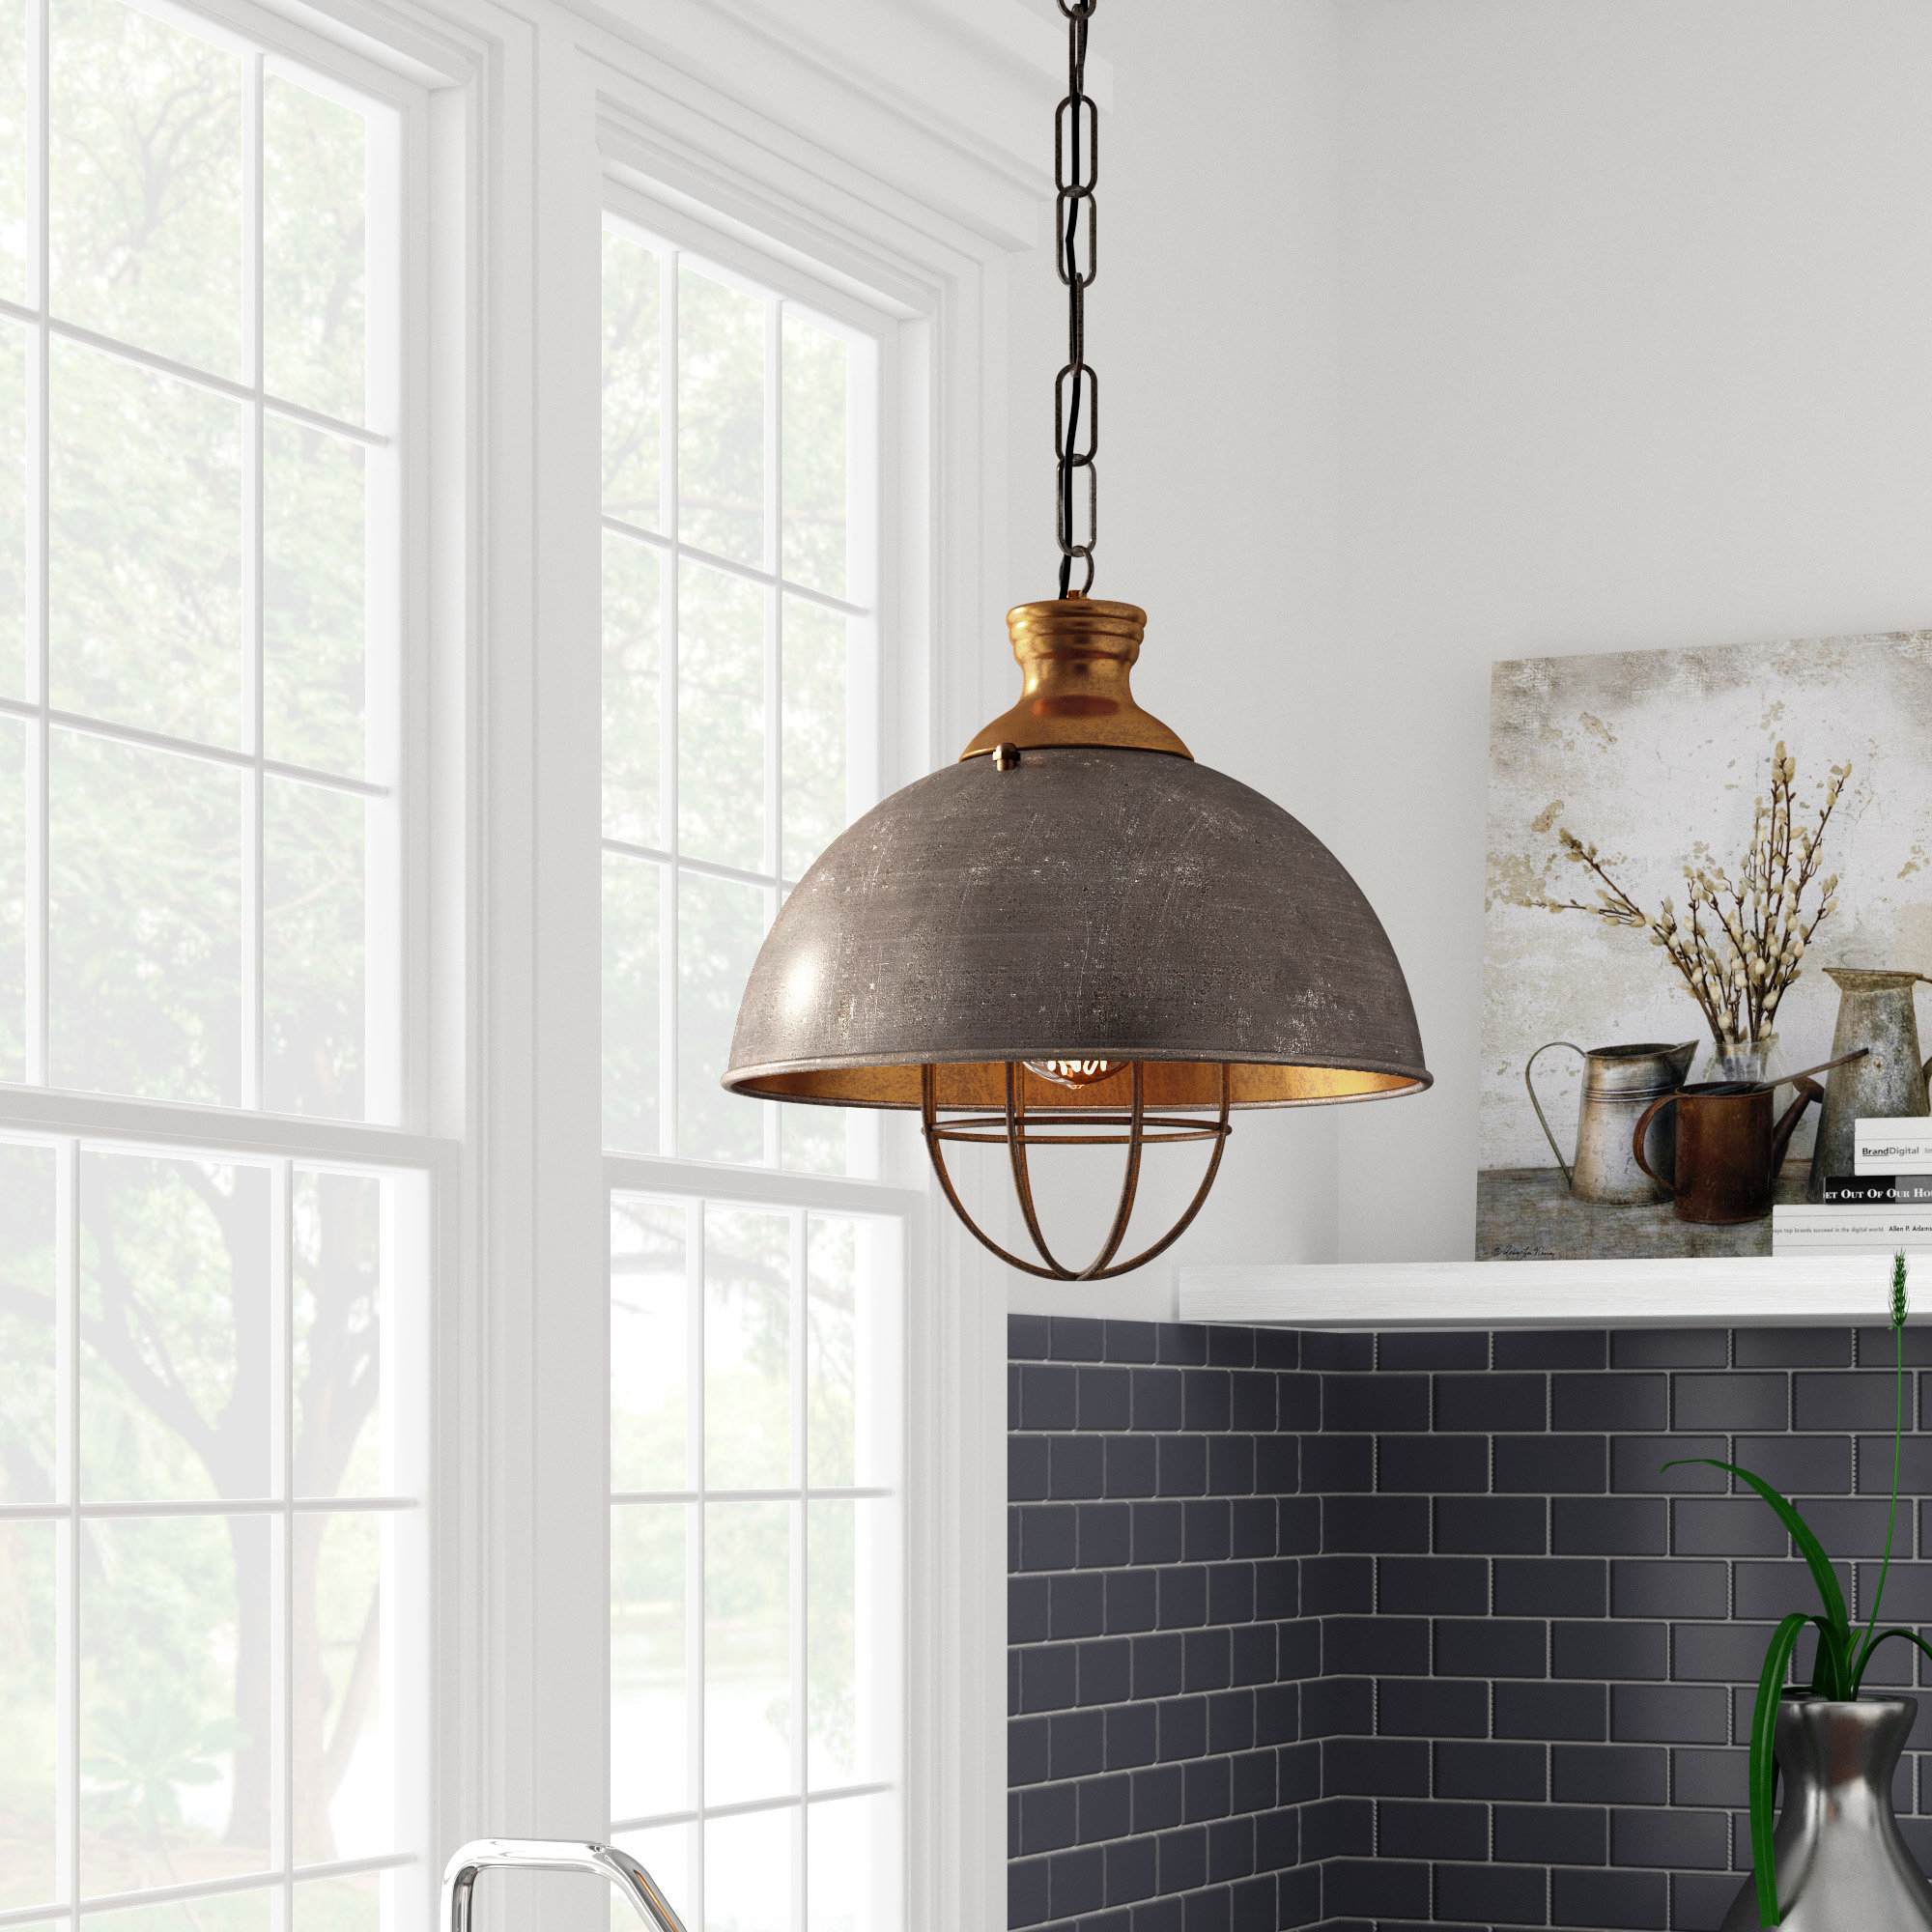 Olathe 1-Light Single Dome Pendant pertaining to 1-Light Single Dome Pendants (Image 22 of 30)